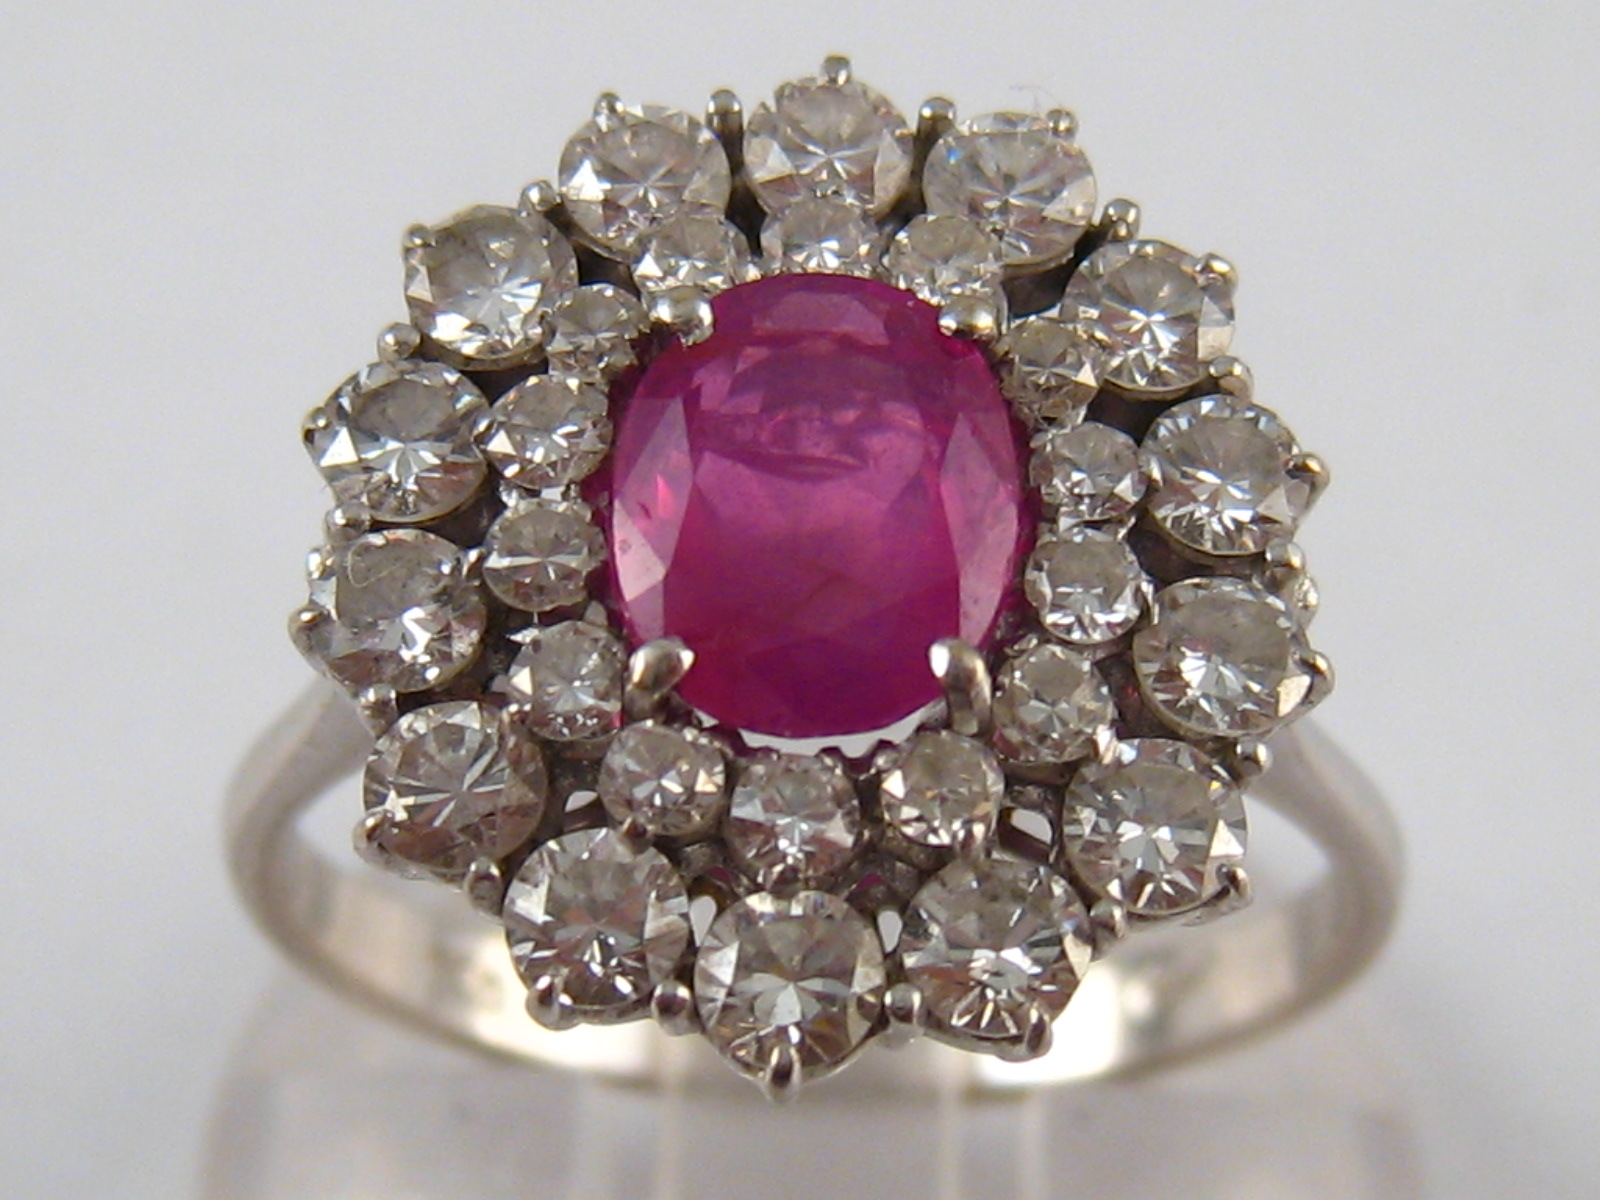 A white metal (tests 18 carat gold) diamond and ruby ring, the ruby measuring approx. 7.